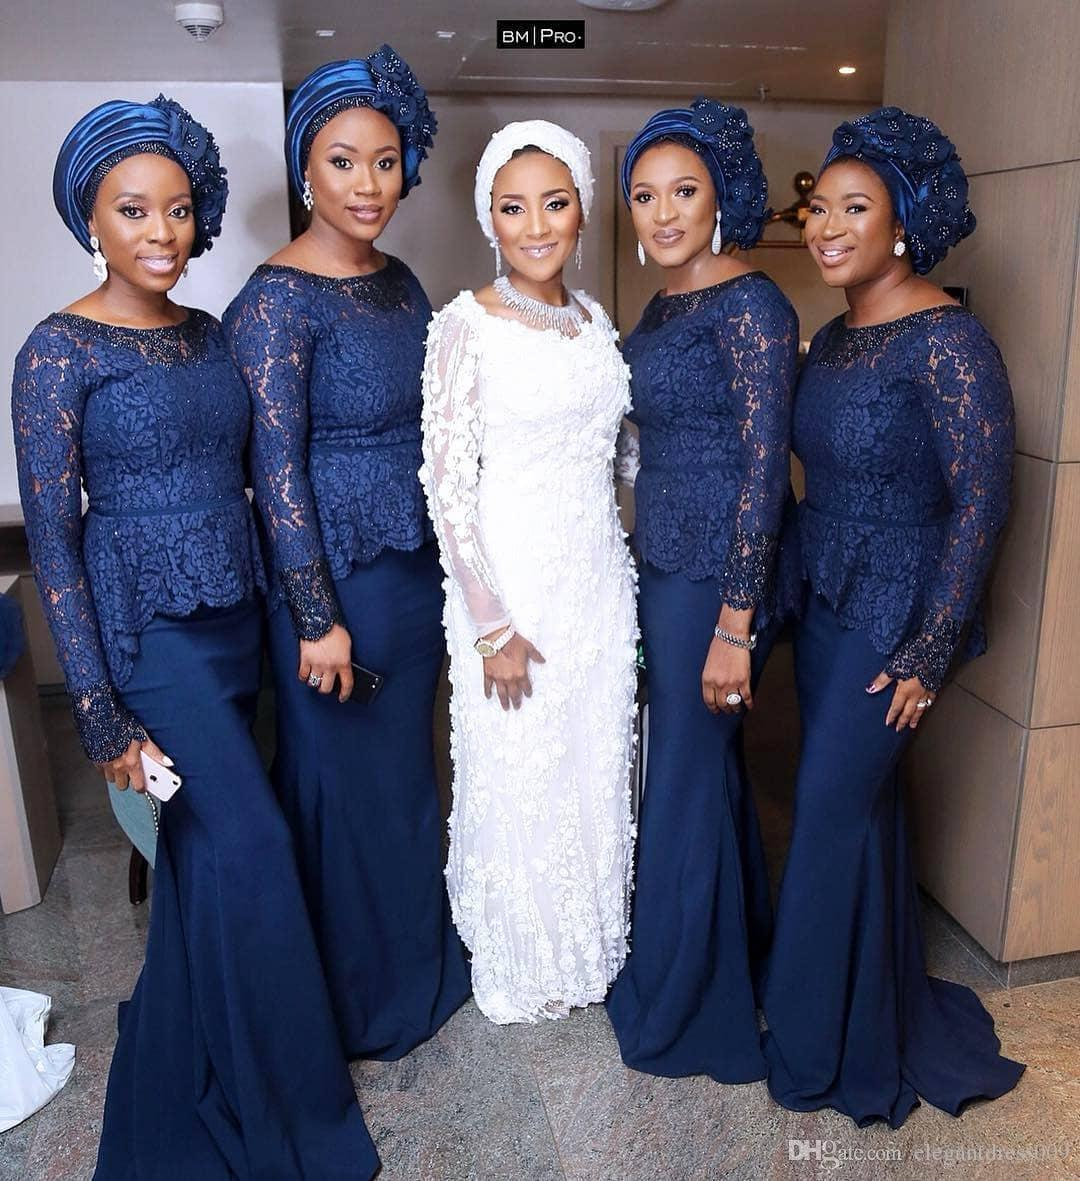 a6a3fa02da84 Navy Blue Mermaid African Bridesmaid Dresses Jewel Neck Lace Appliqued  Ruffles Long Sleeves Wedding Guest Dress Sweep Train Formal Gowns Brown  Bridesmaid ...